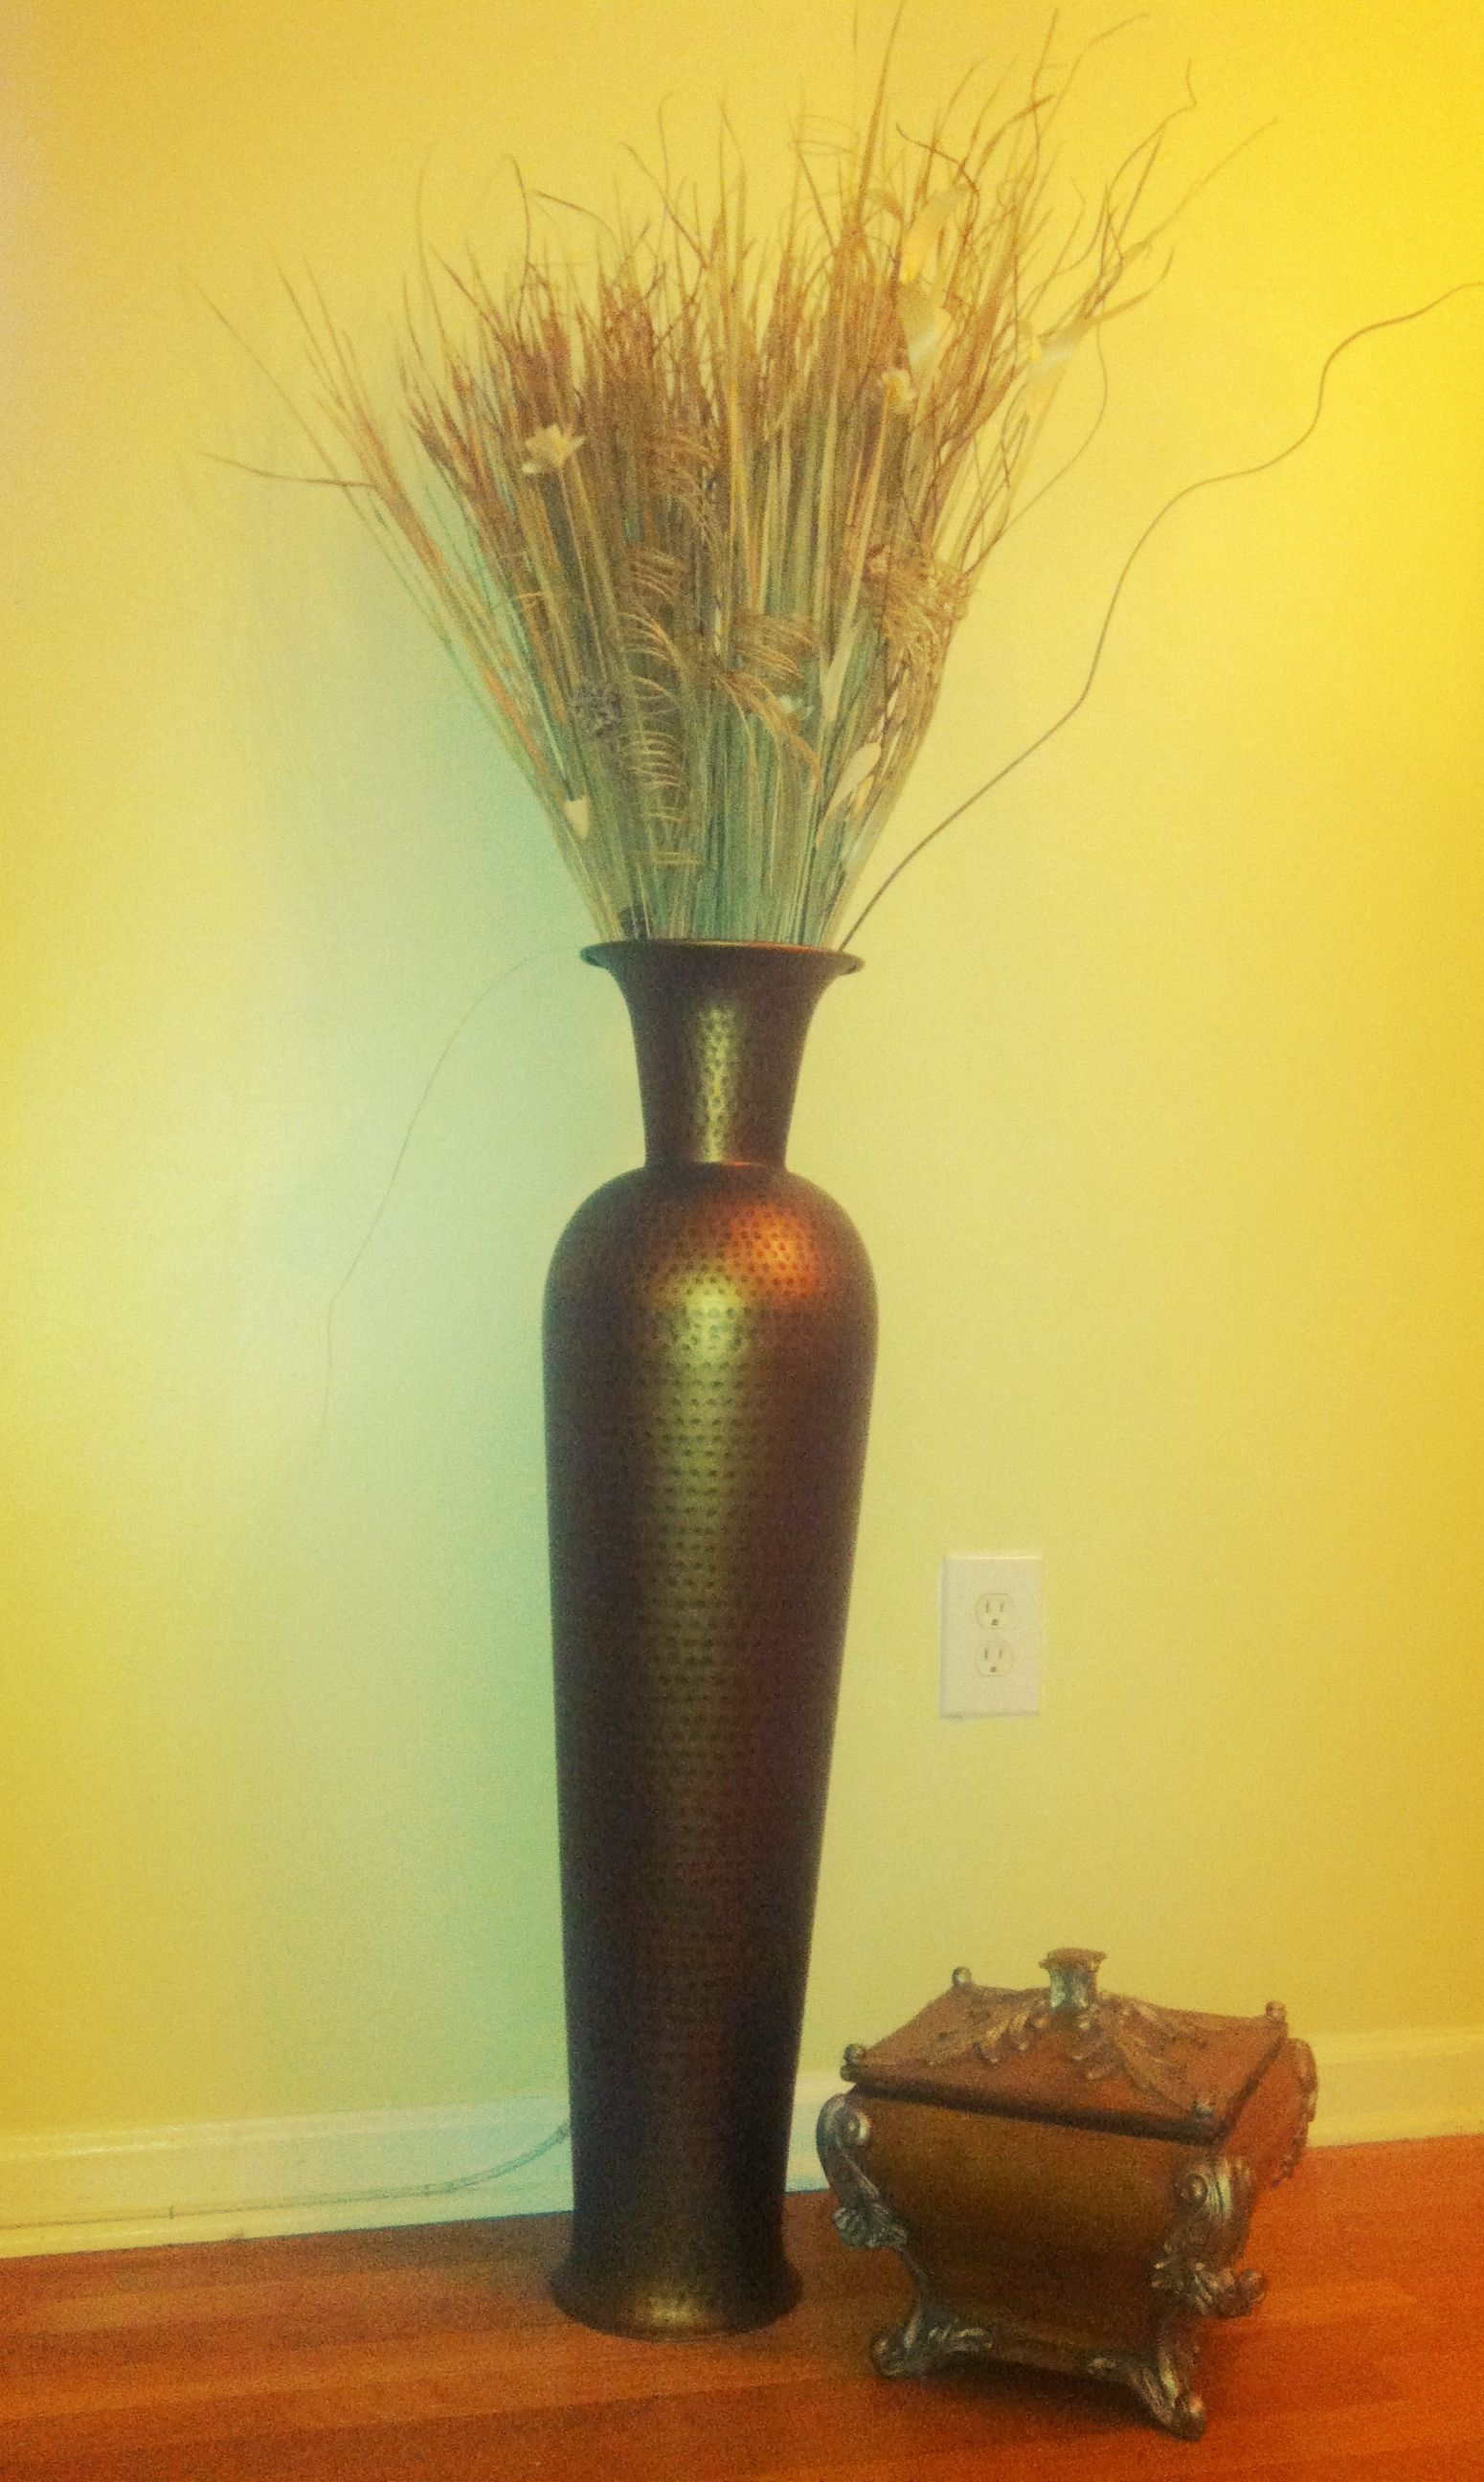 My Pier 1 tall vase with Pink Daisy floor decor | Living room ...